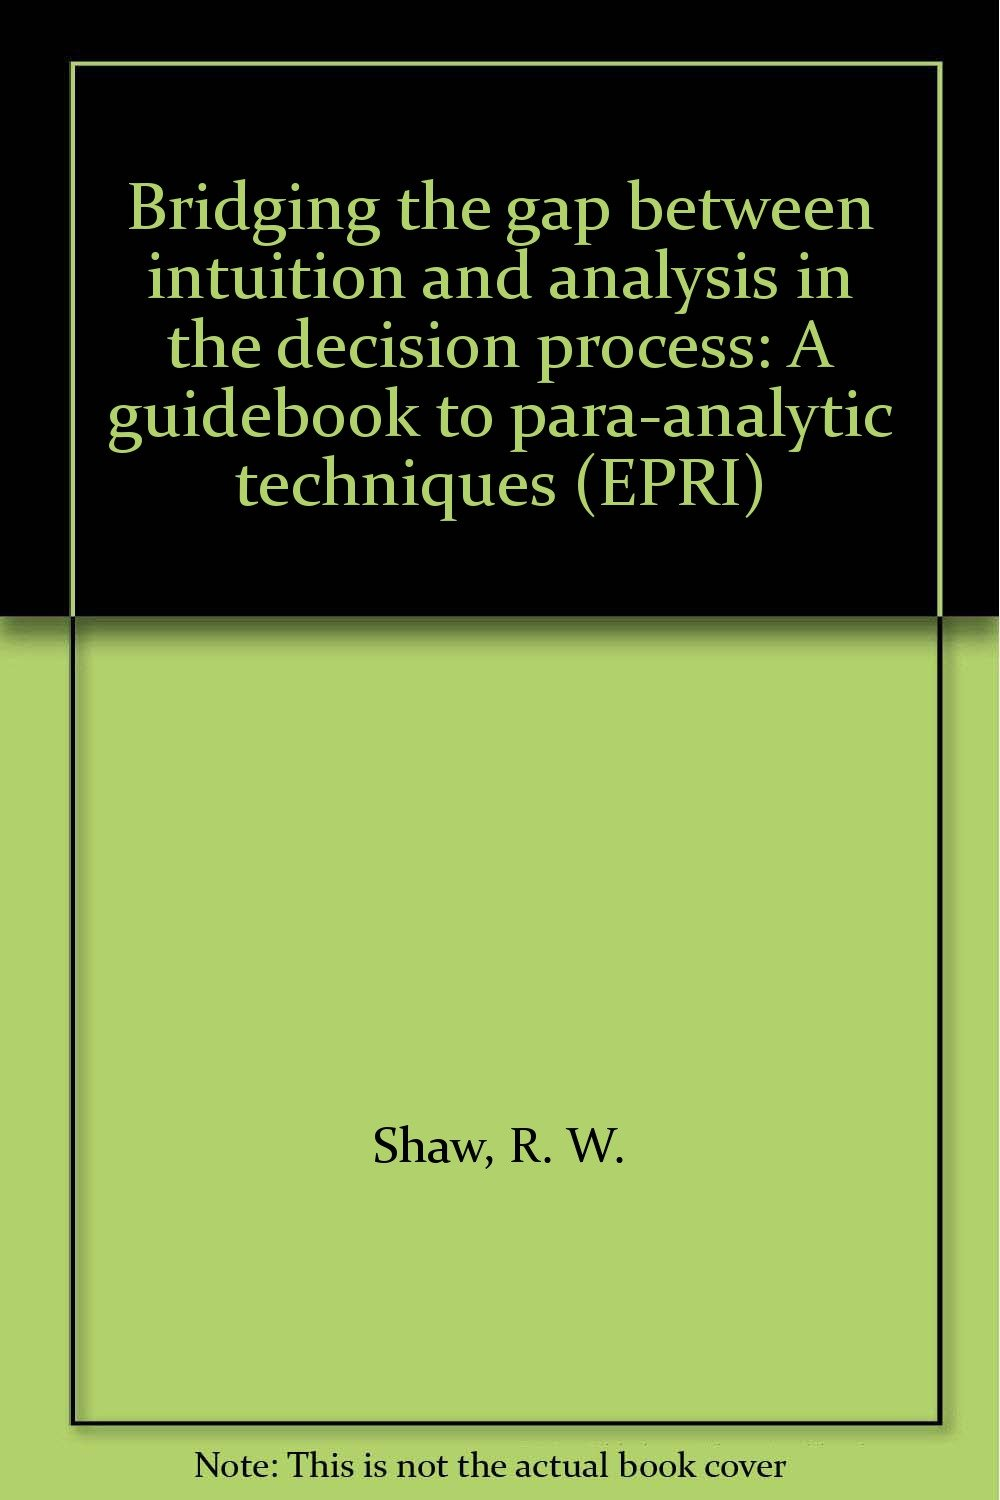 Bridging the gap between intuition and analysis in the decision process: A guidebook to para-analytic techniques (EPRI)